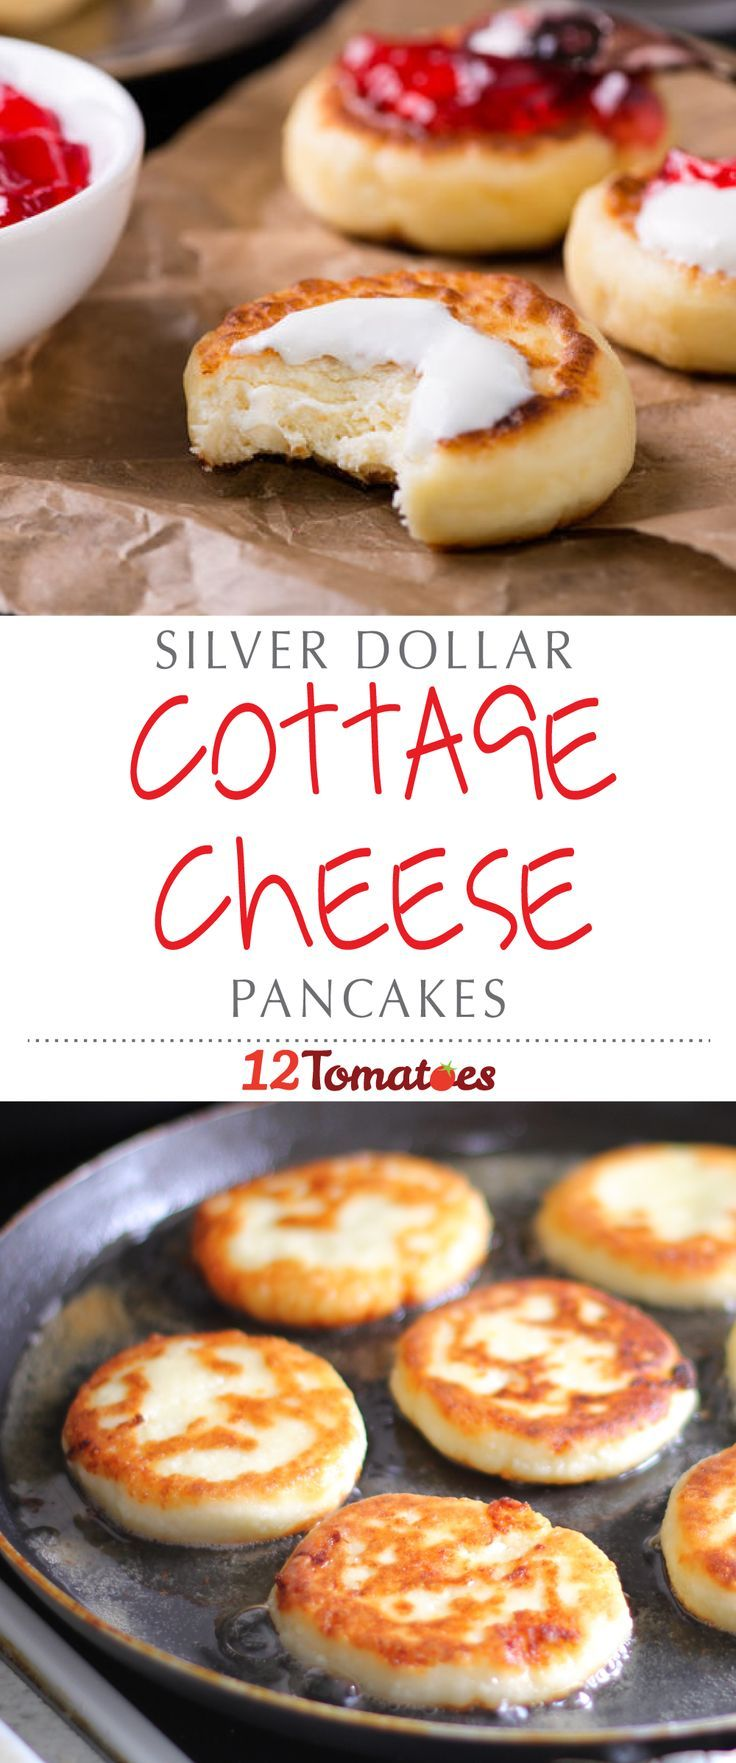 Silver Dollar Cottage Cheese Pancakes   That's right, stuffed with protein-packed cottage cheese, we've turned the standard pancake into something that has some serious nutritional value.